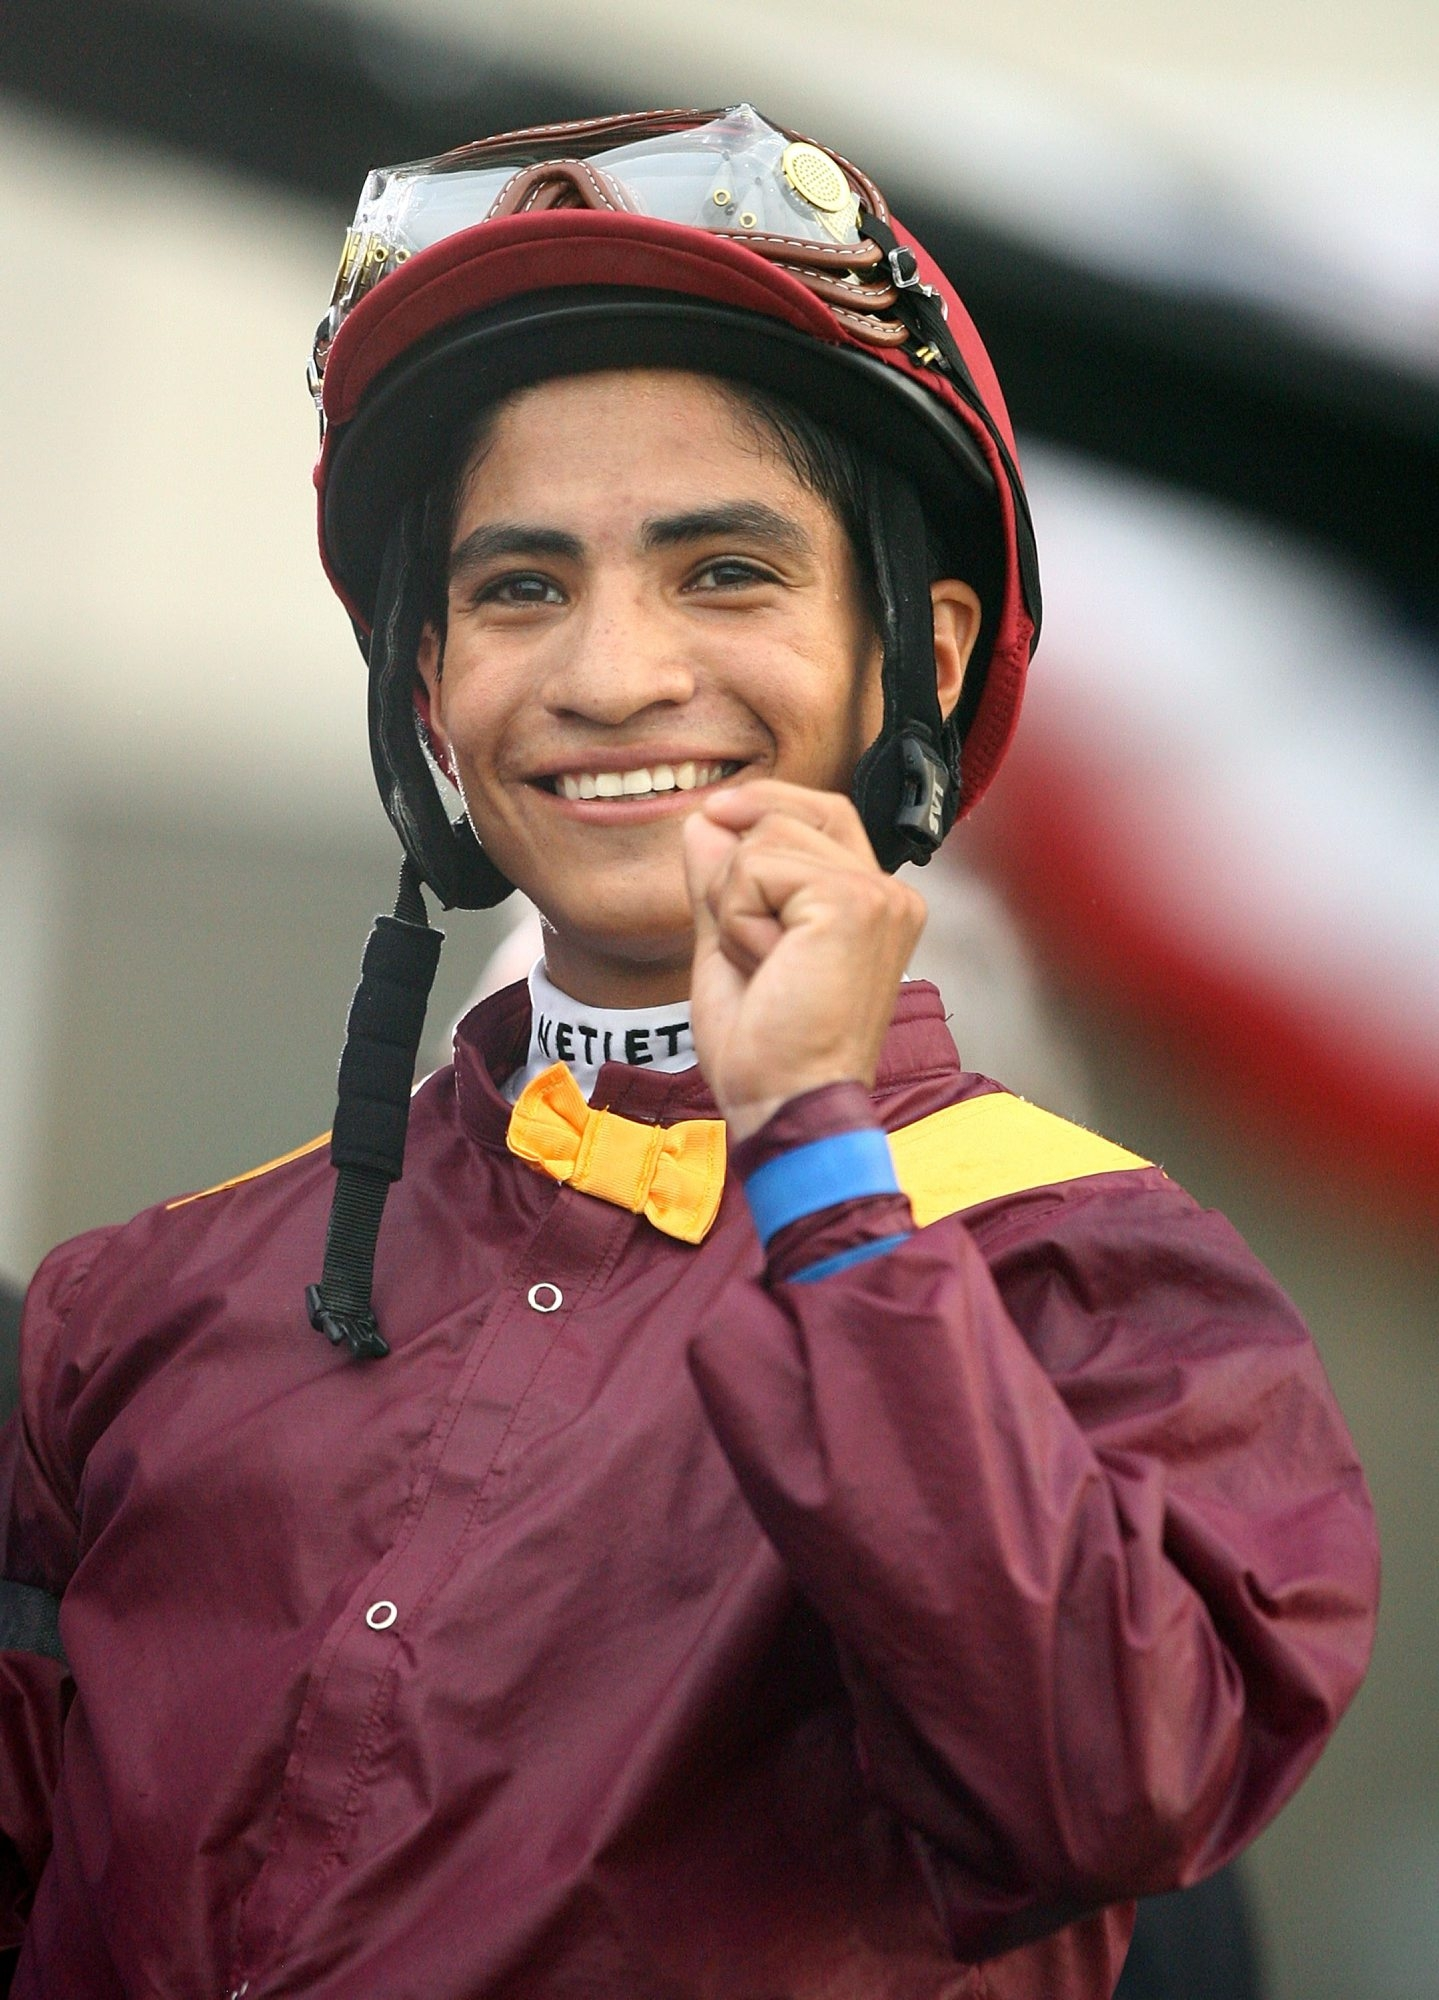 Jockey Alan Garcia says his Queen's Plate mount, Conquest Boogaloo, is underrated.